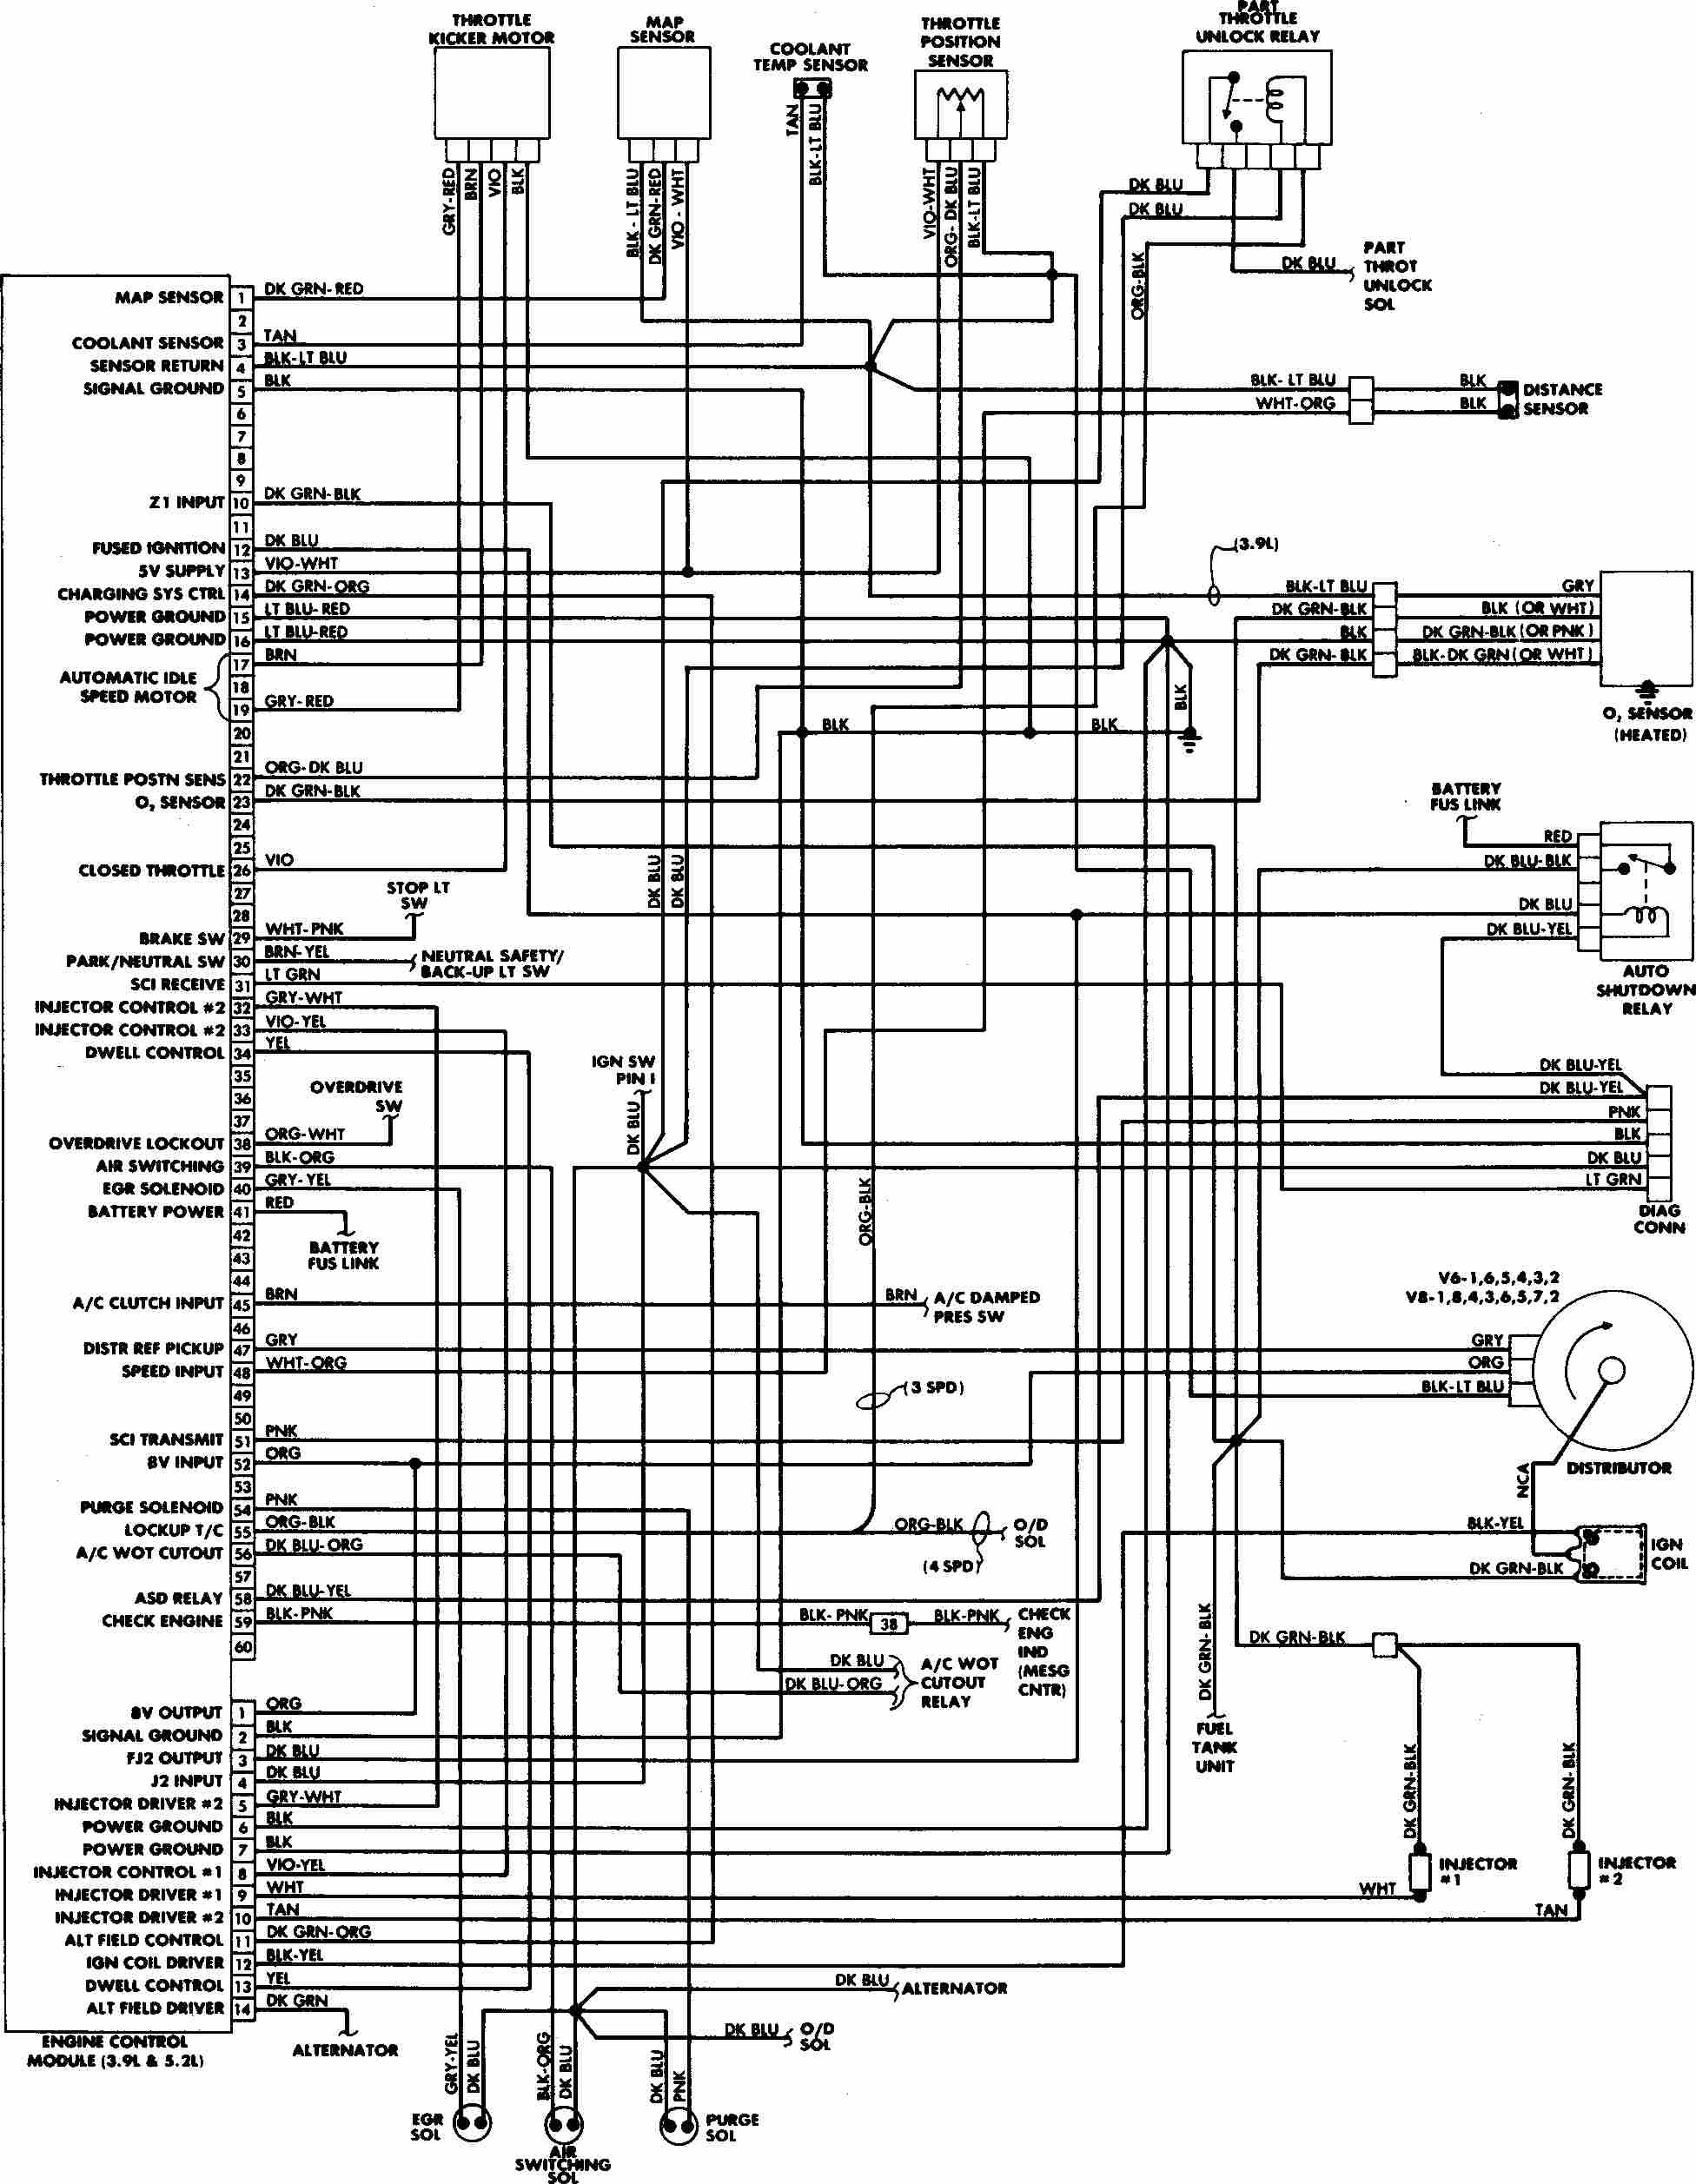 76 Chevy Truck Wiring Diagram - Wiring Data